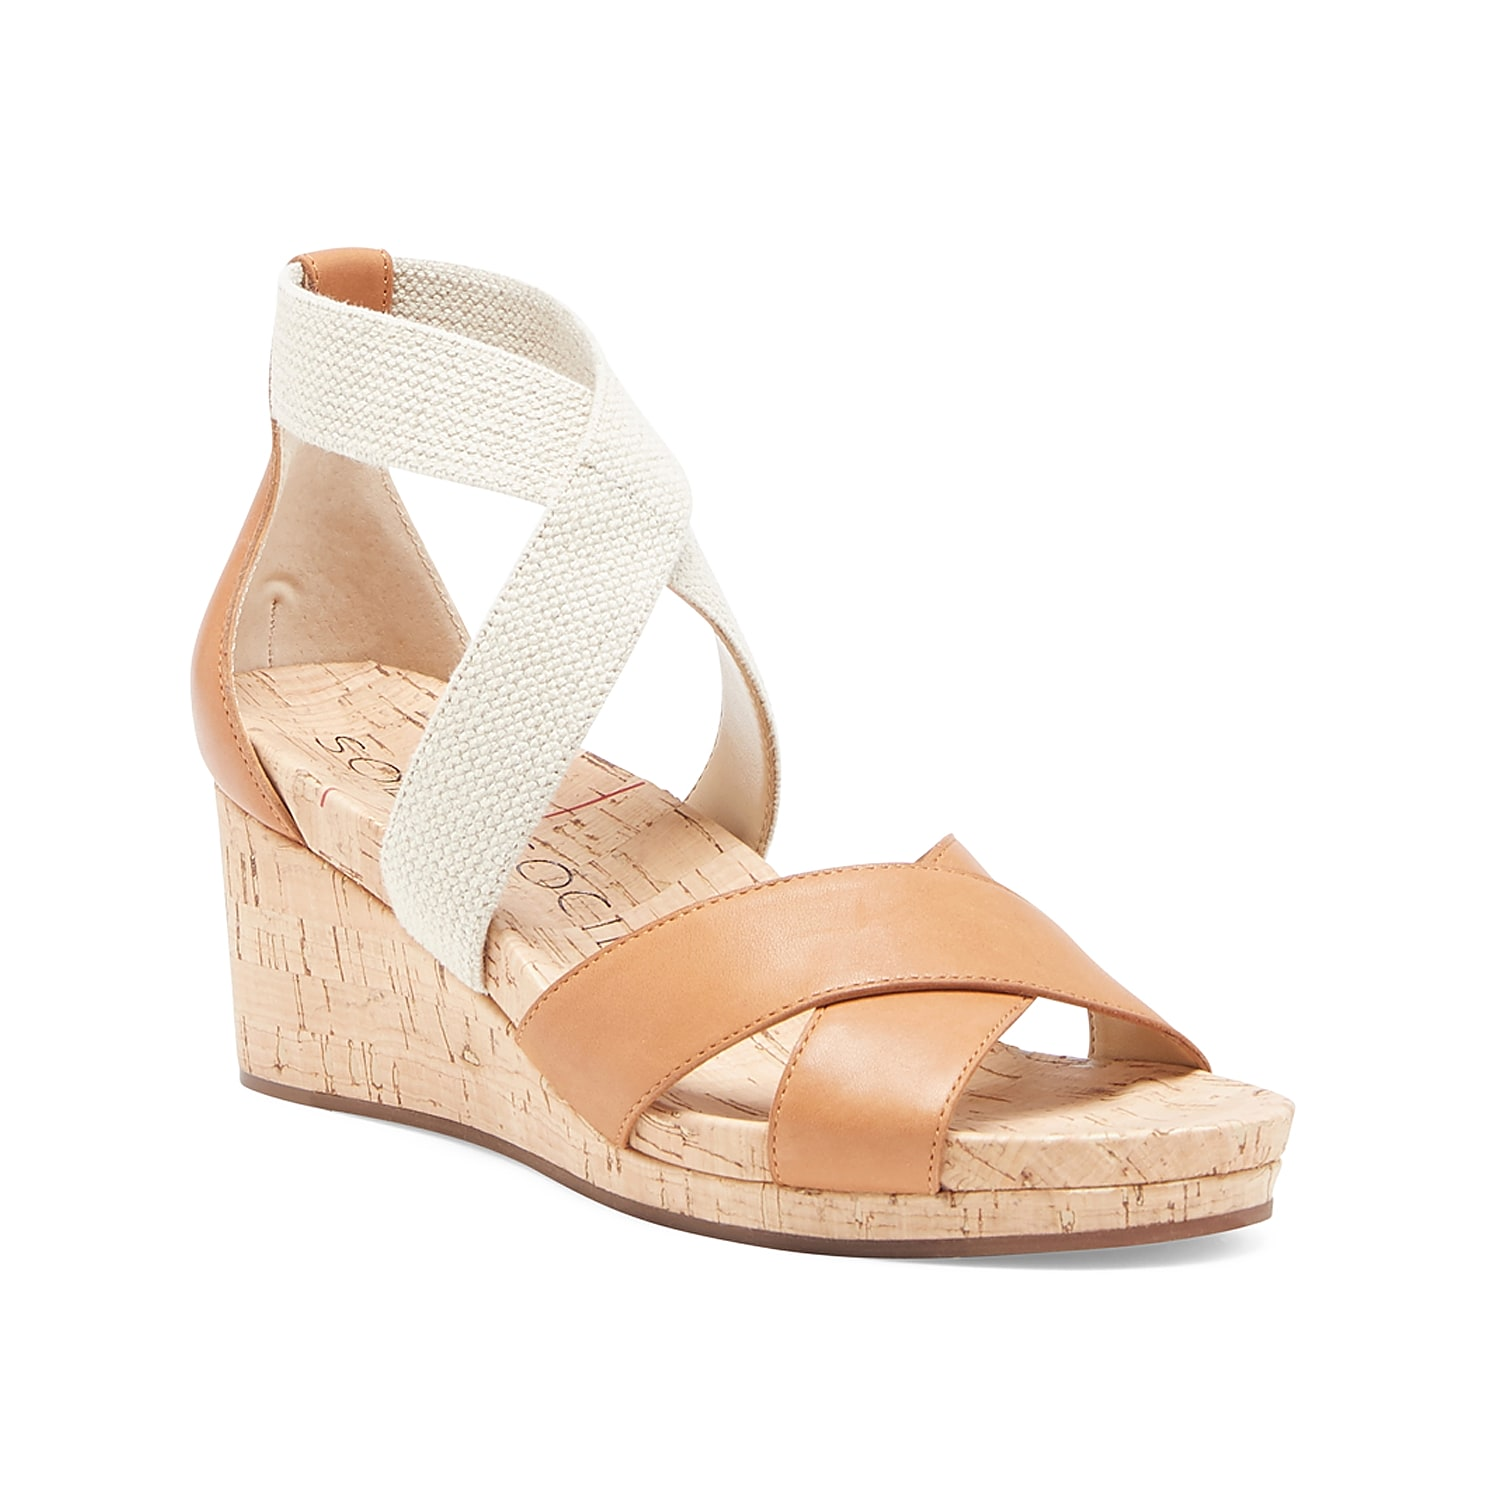 The Kimlee wedge sandal from Sole Society flaunts stylish appeal with its cork wedge heel and criss cross straps. Rock this leather pair with your favorite sundress or midi skirt for your new go-to wedge.